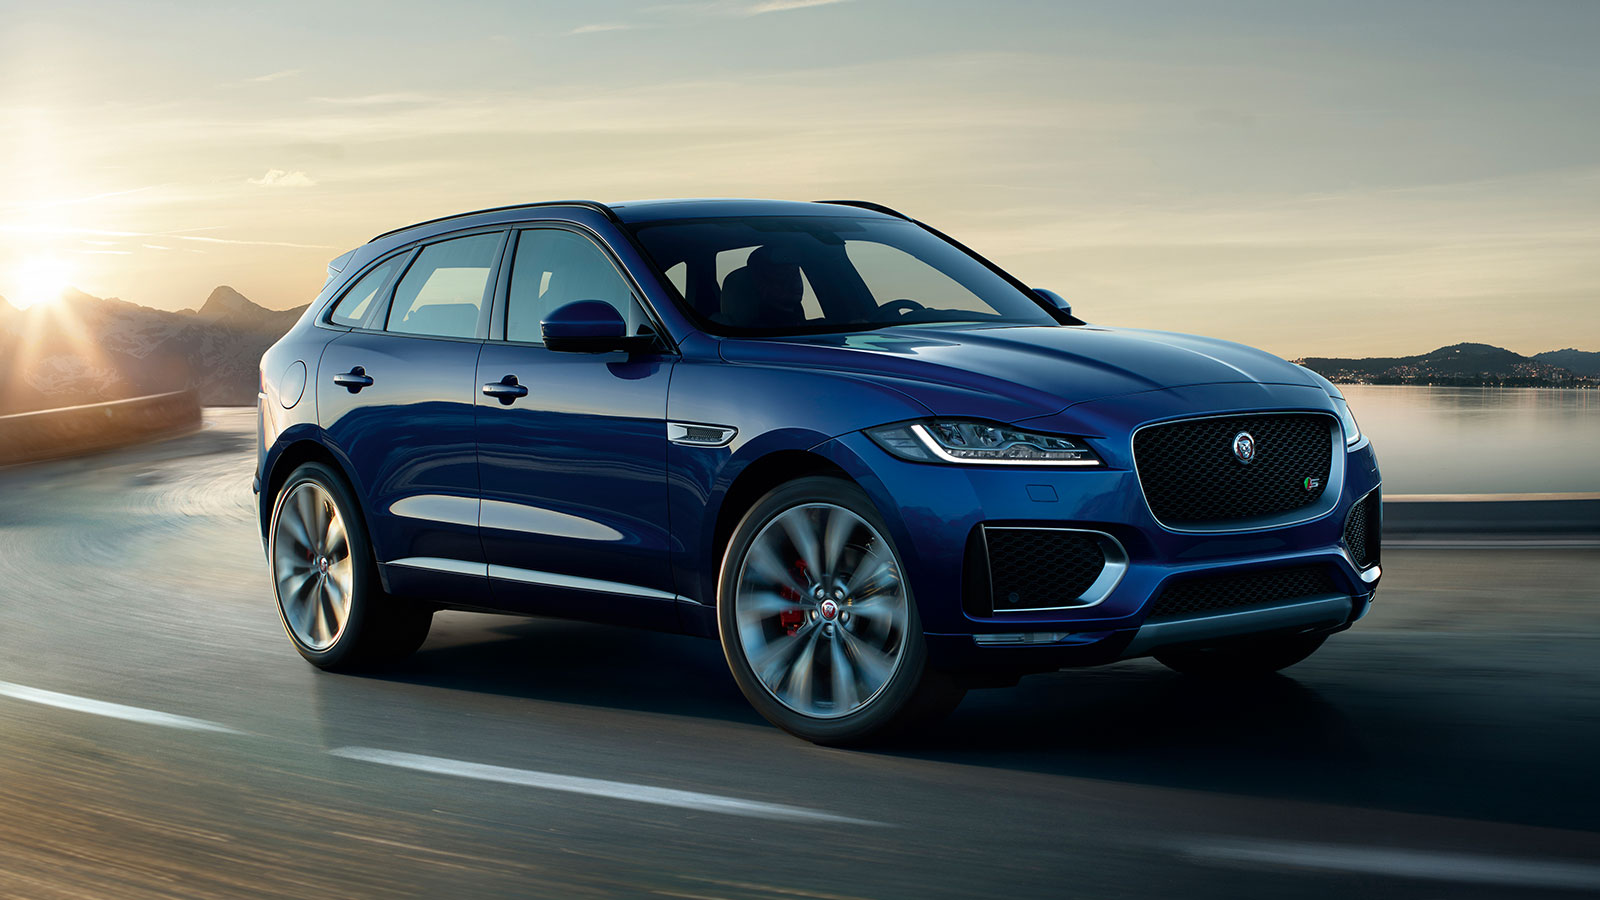 Jaguar F-PACE Blue Exterior On Road.